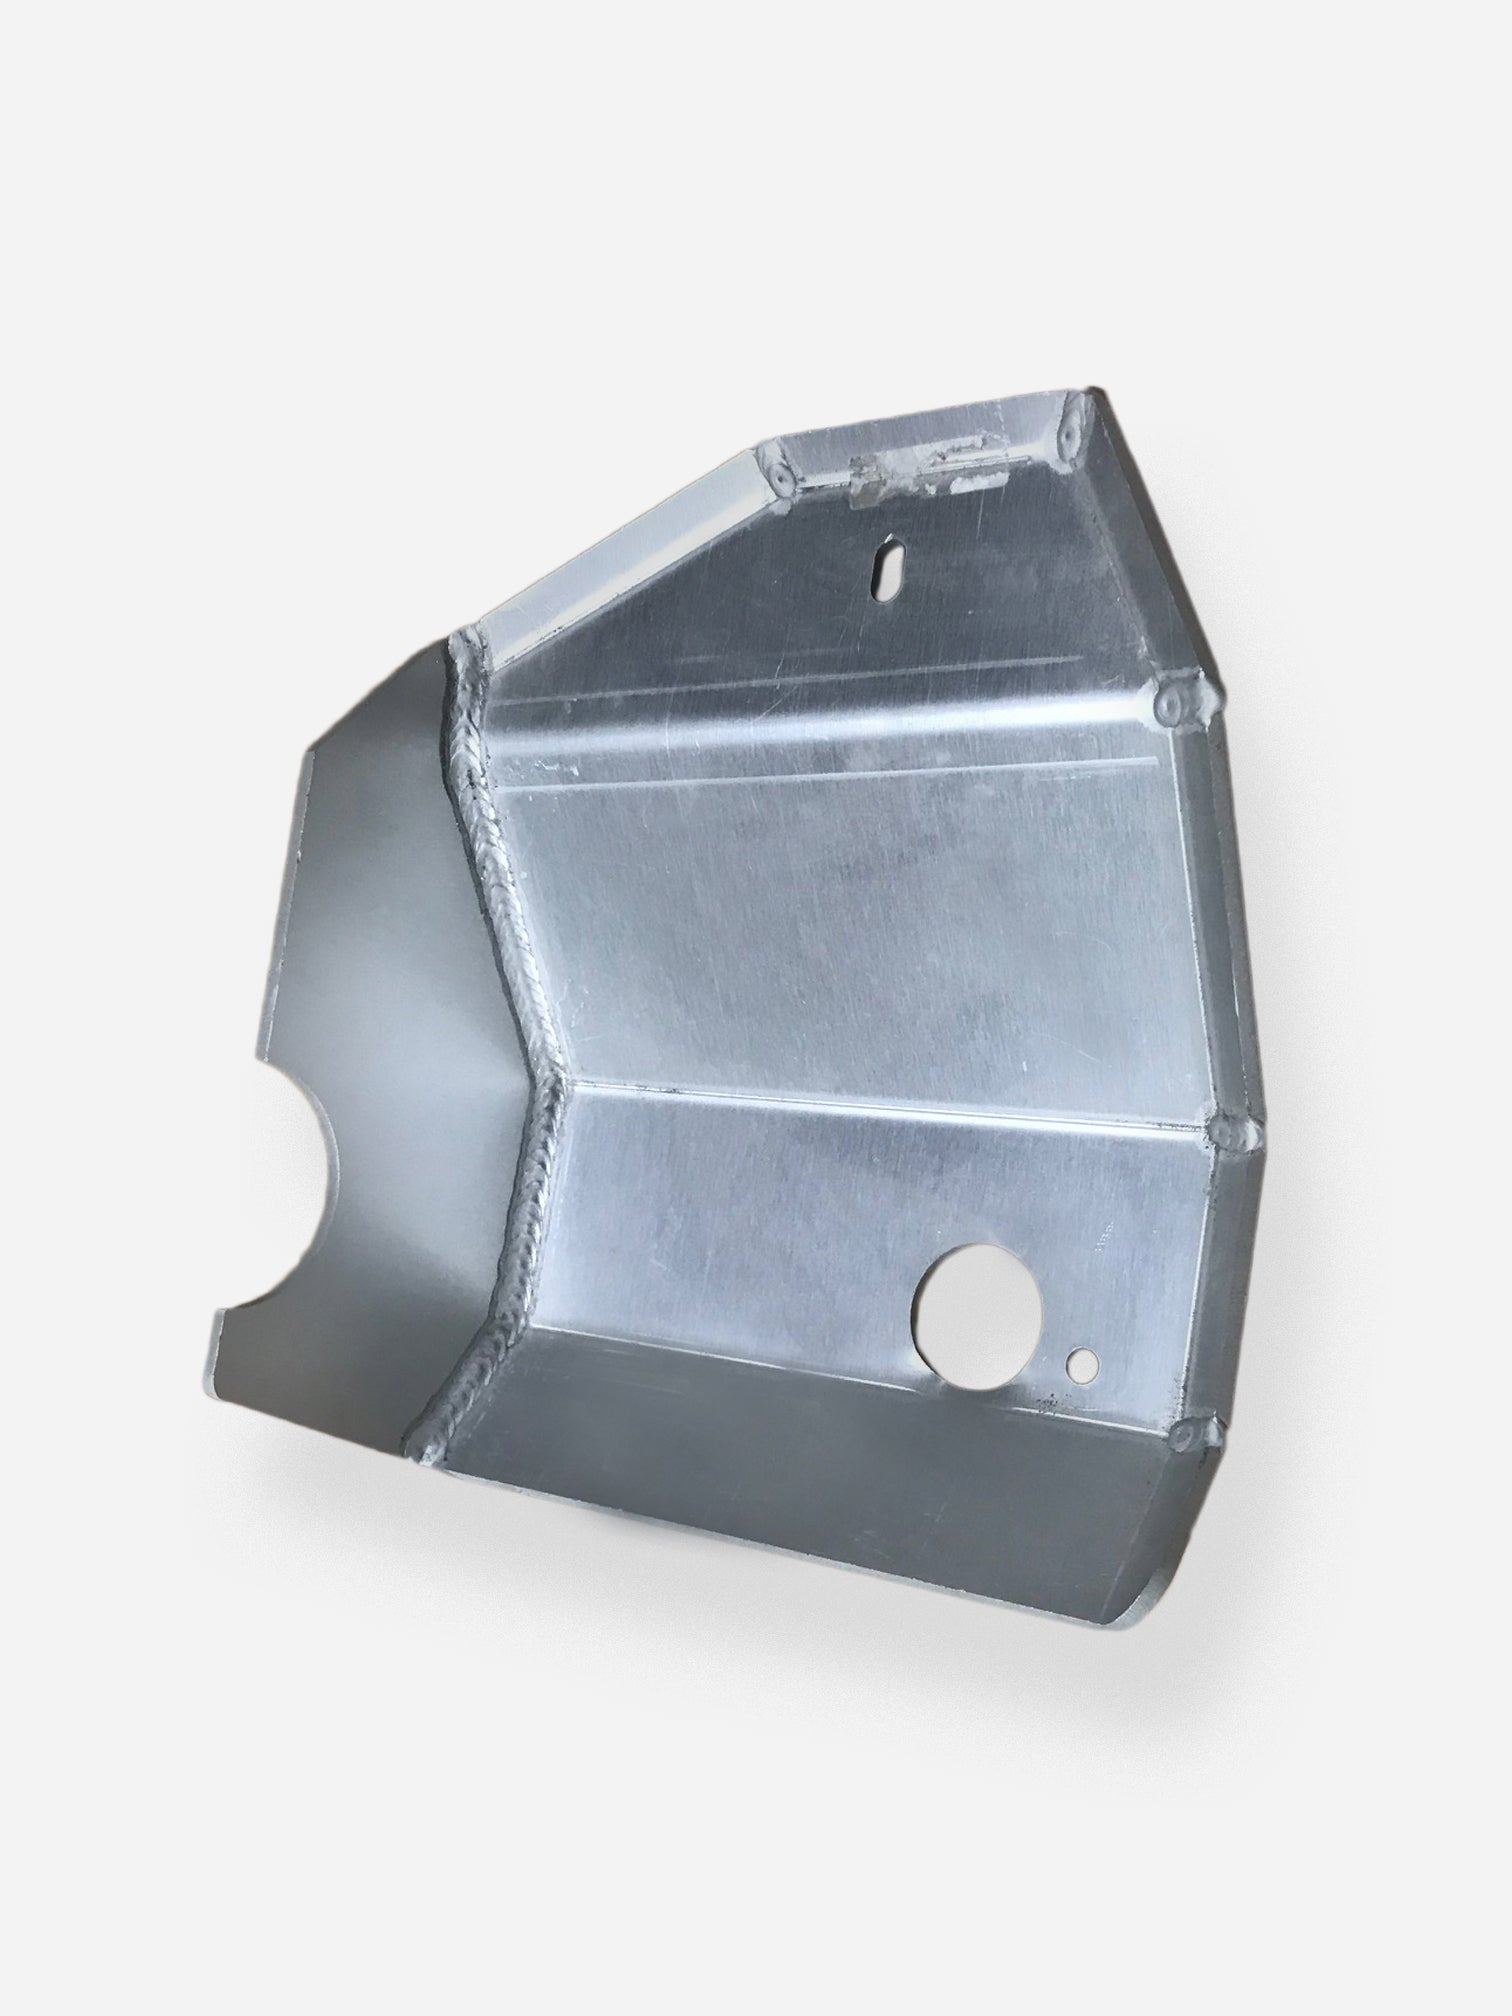 Rear Differential Guard, Yamaha Grizzly 600